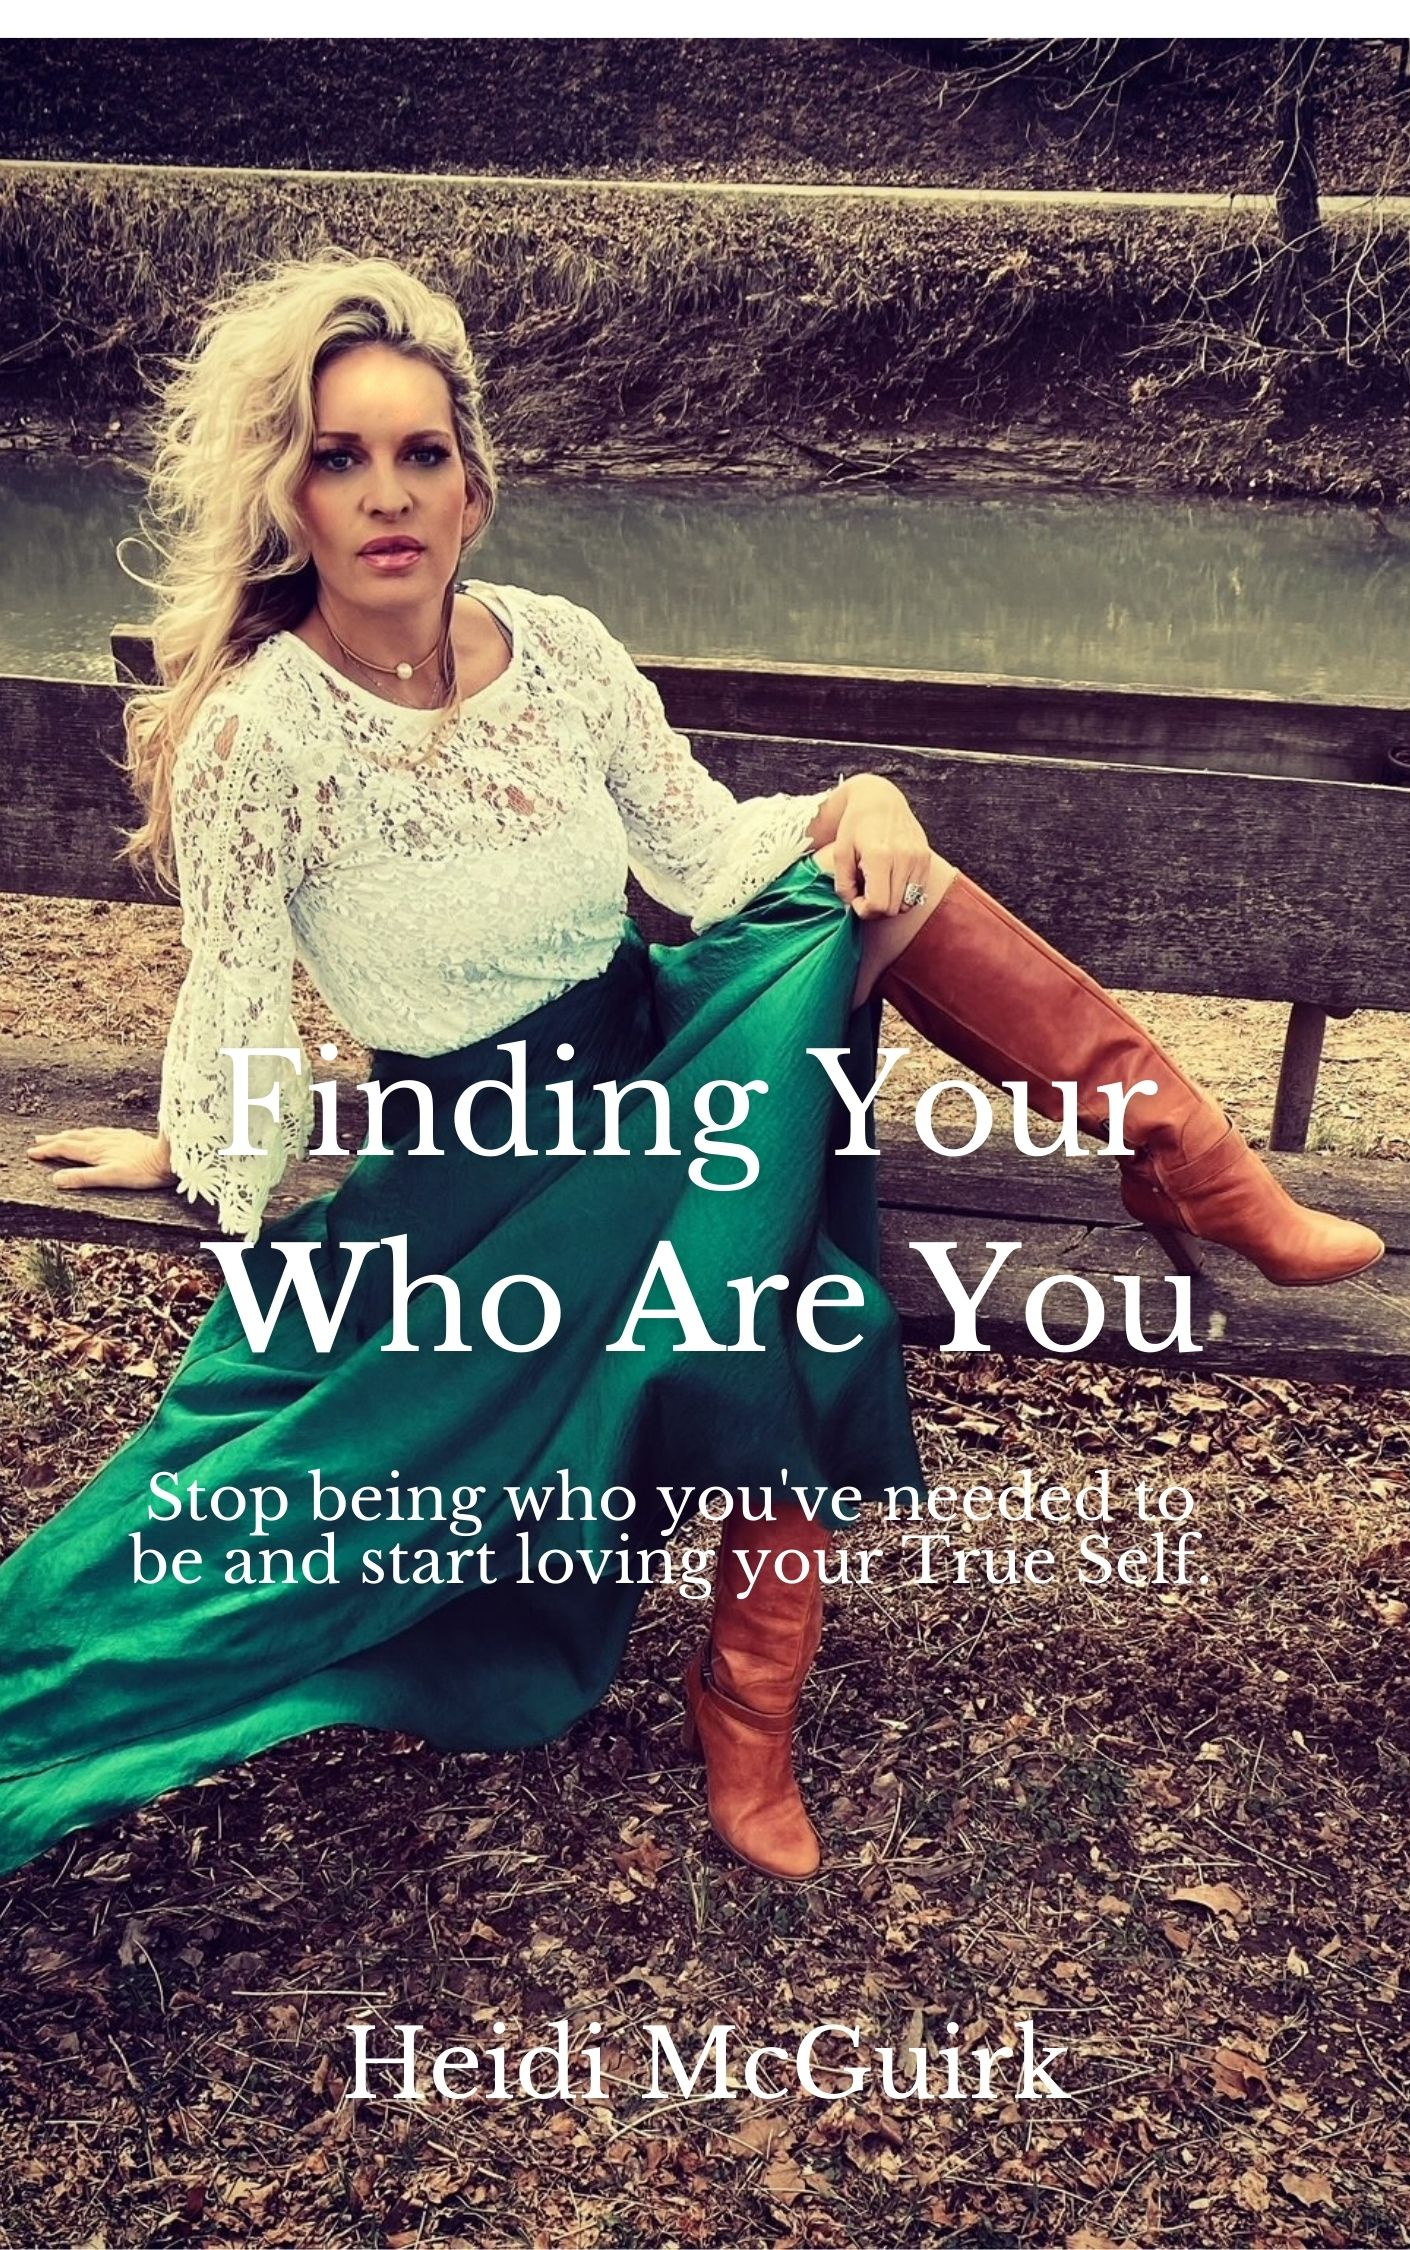 Finding Your Who Are you: How to stop being who you've needed to be and start loving your true self.